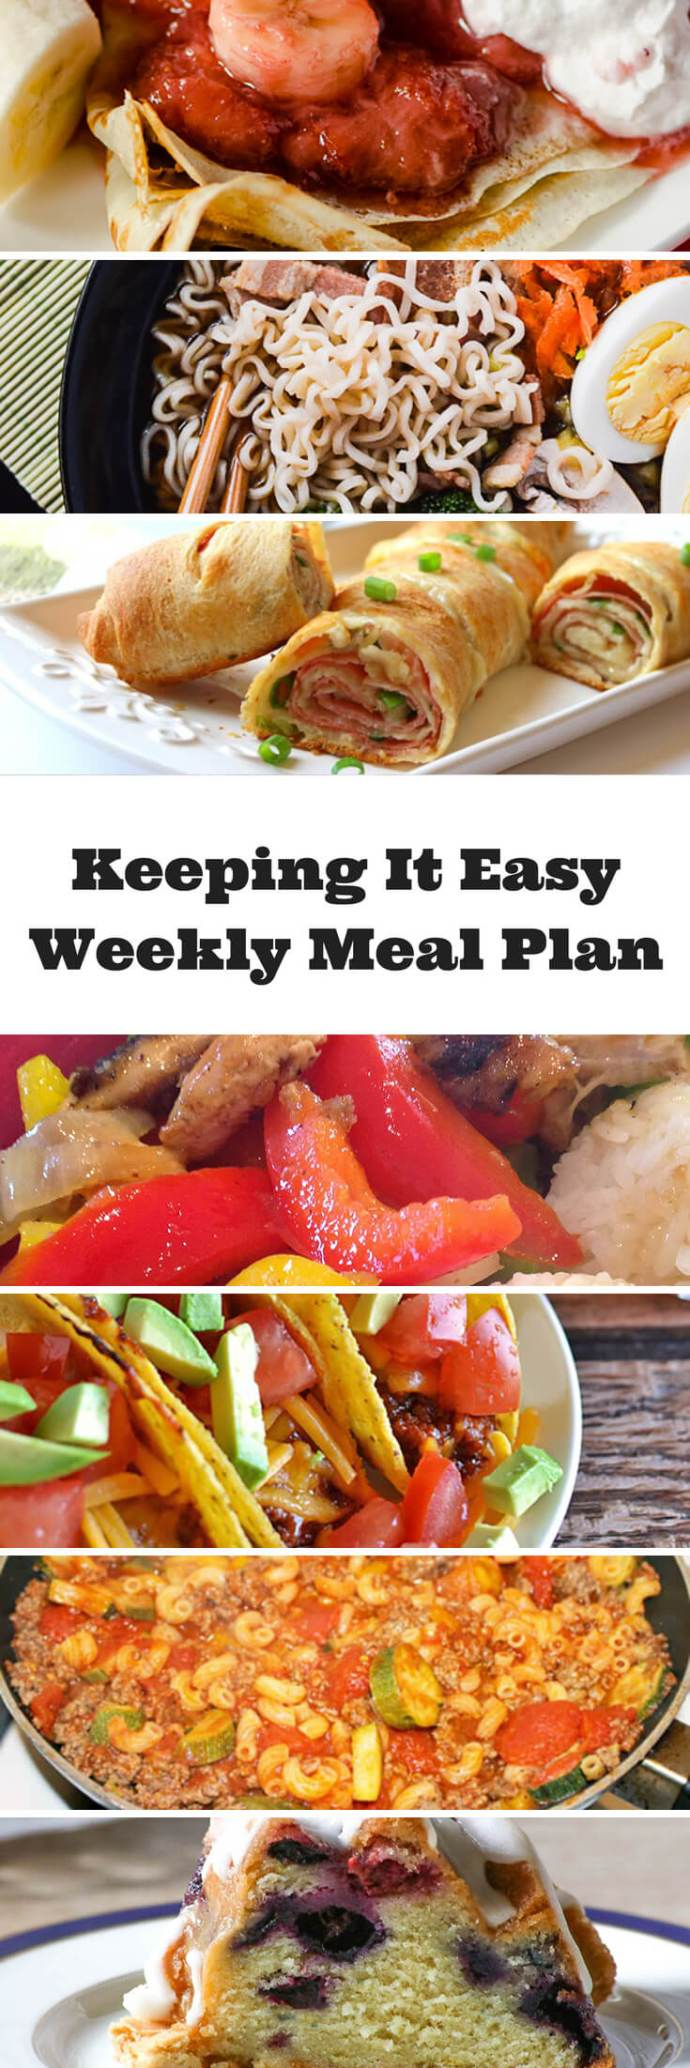 Easy Weekly Meal Plan #10 from My Fearless Kitchen. This week's meal plan includes Strawberry Banana Hazelnut Cream Crepes, Bacon Miso Ramen, BBQ Ranch Baked Turkey Tacos, Ham & Swiss Stromboli, One Pot Beef Pasta, Orange Chicken Stir-Fry, and Raspberry Blueberry Bundt Cake.